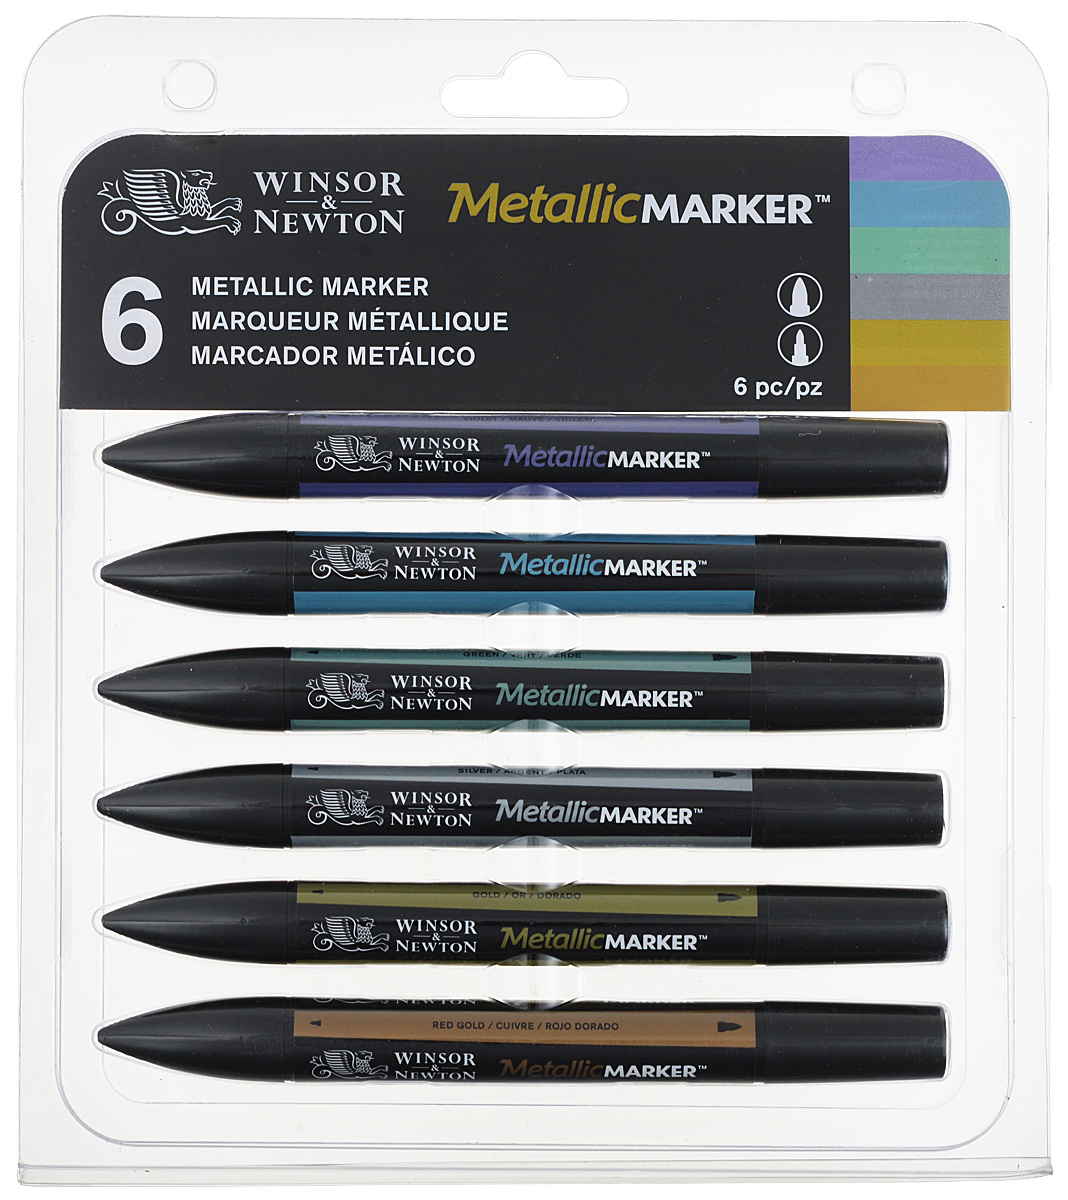 Winsor&Newton Набор маркеров Metallic Marker металлик 6 шт 6 pcs semi metallic motorcycle front